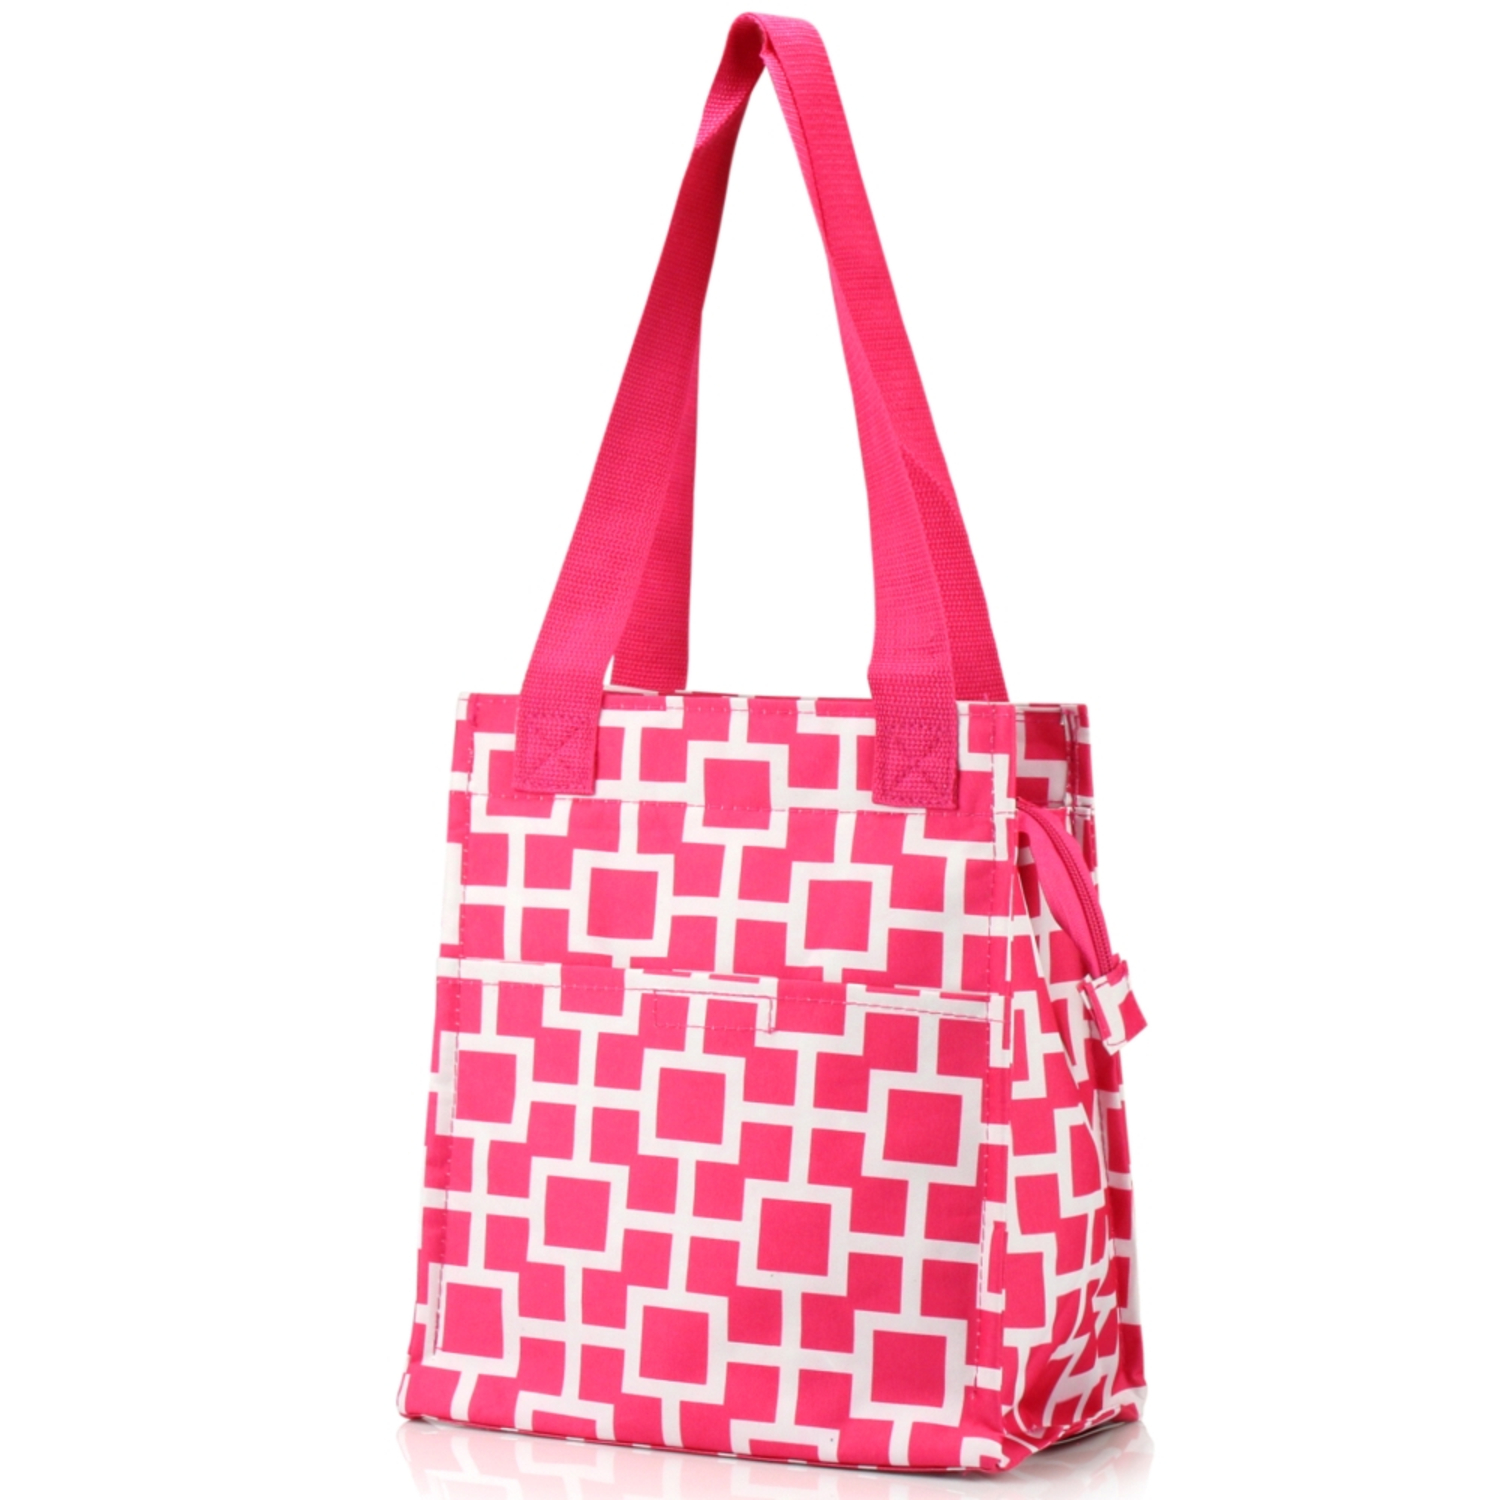 Zodaca Fashion Insulated Lunch Bag Women Tote Cooler Picnic Travel Food Box Zipper Carry Bags for Camping Hiking